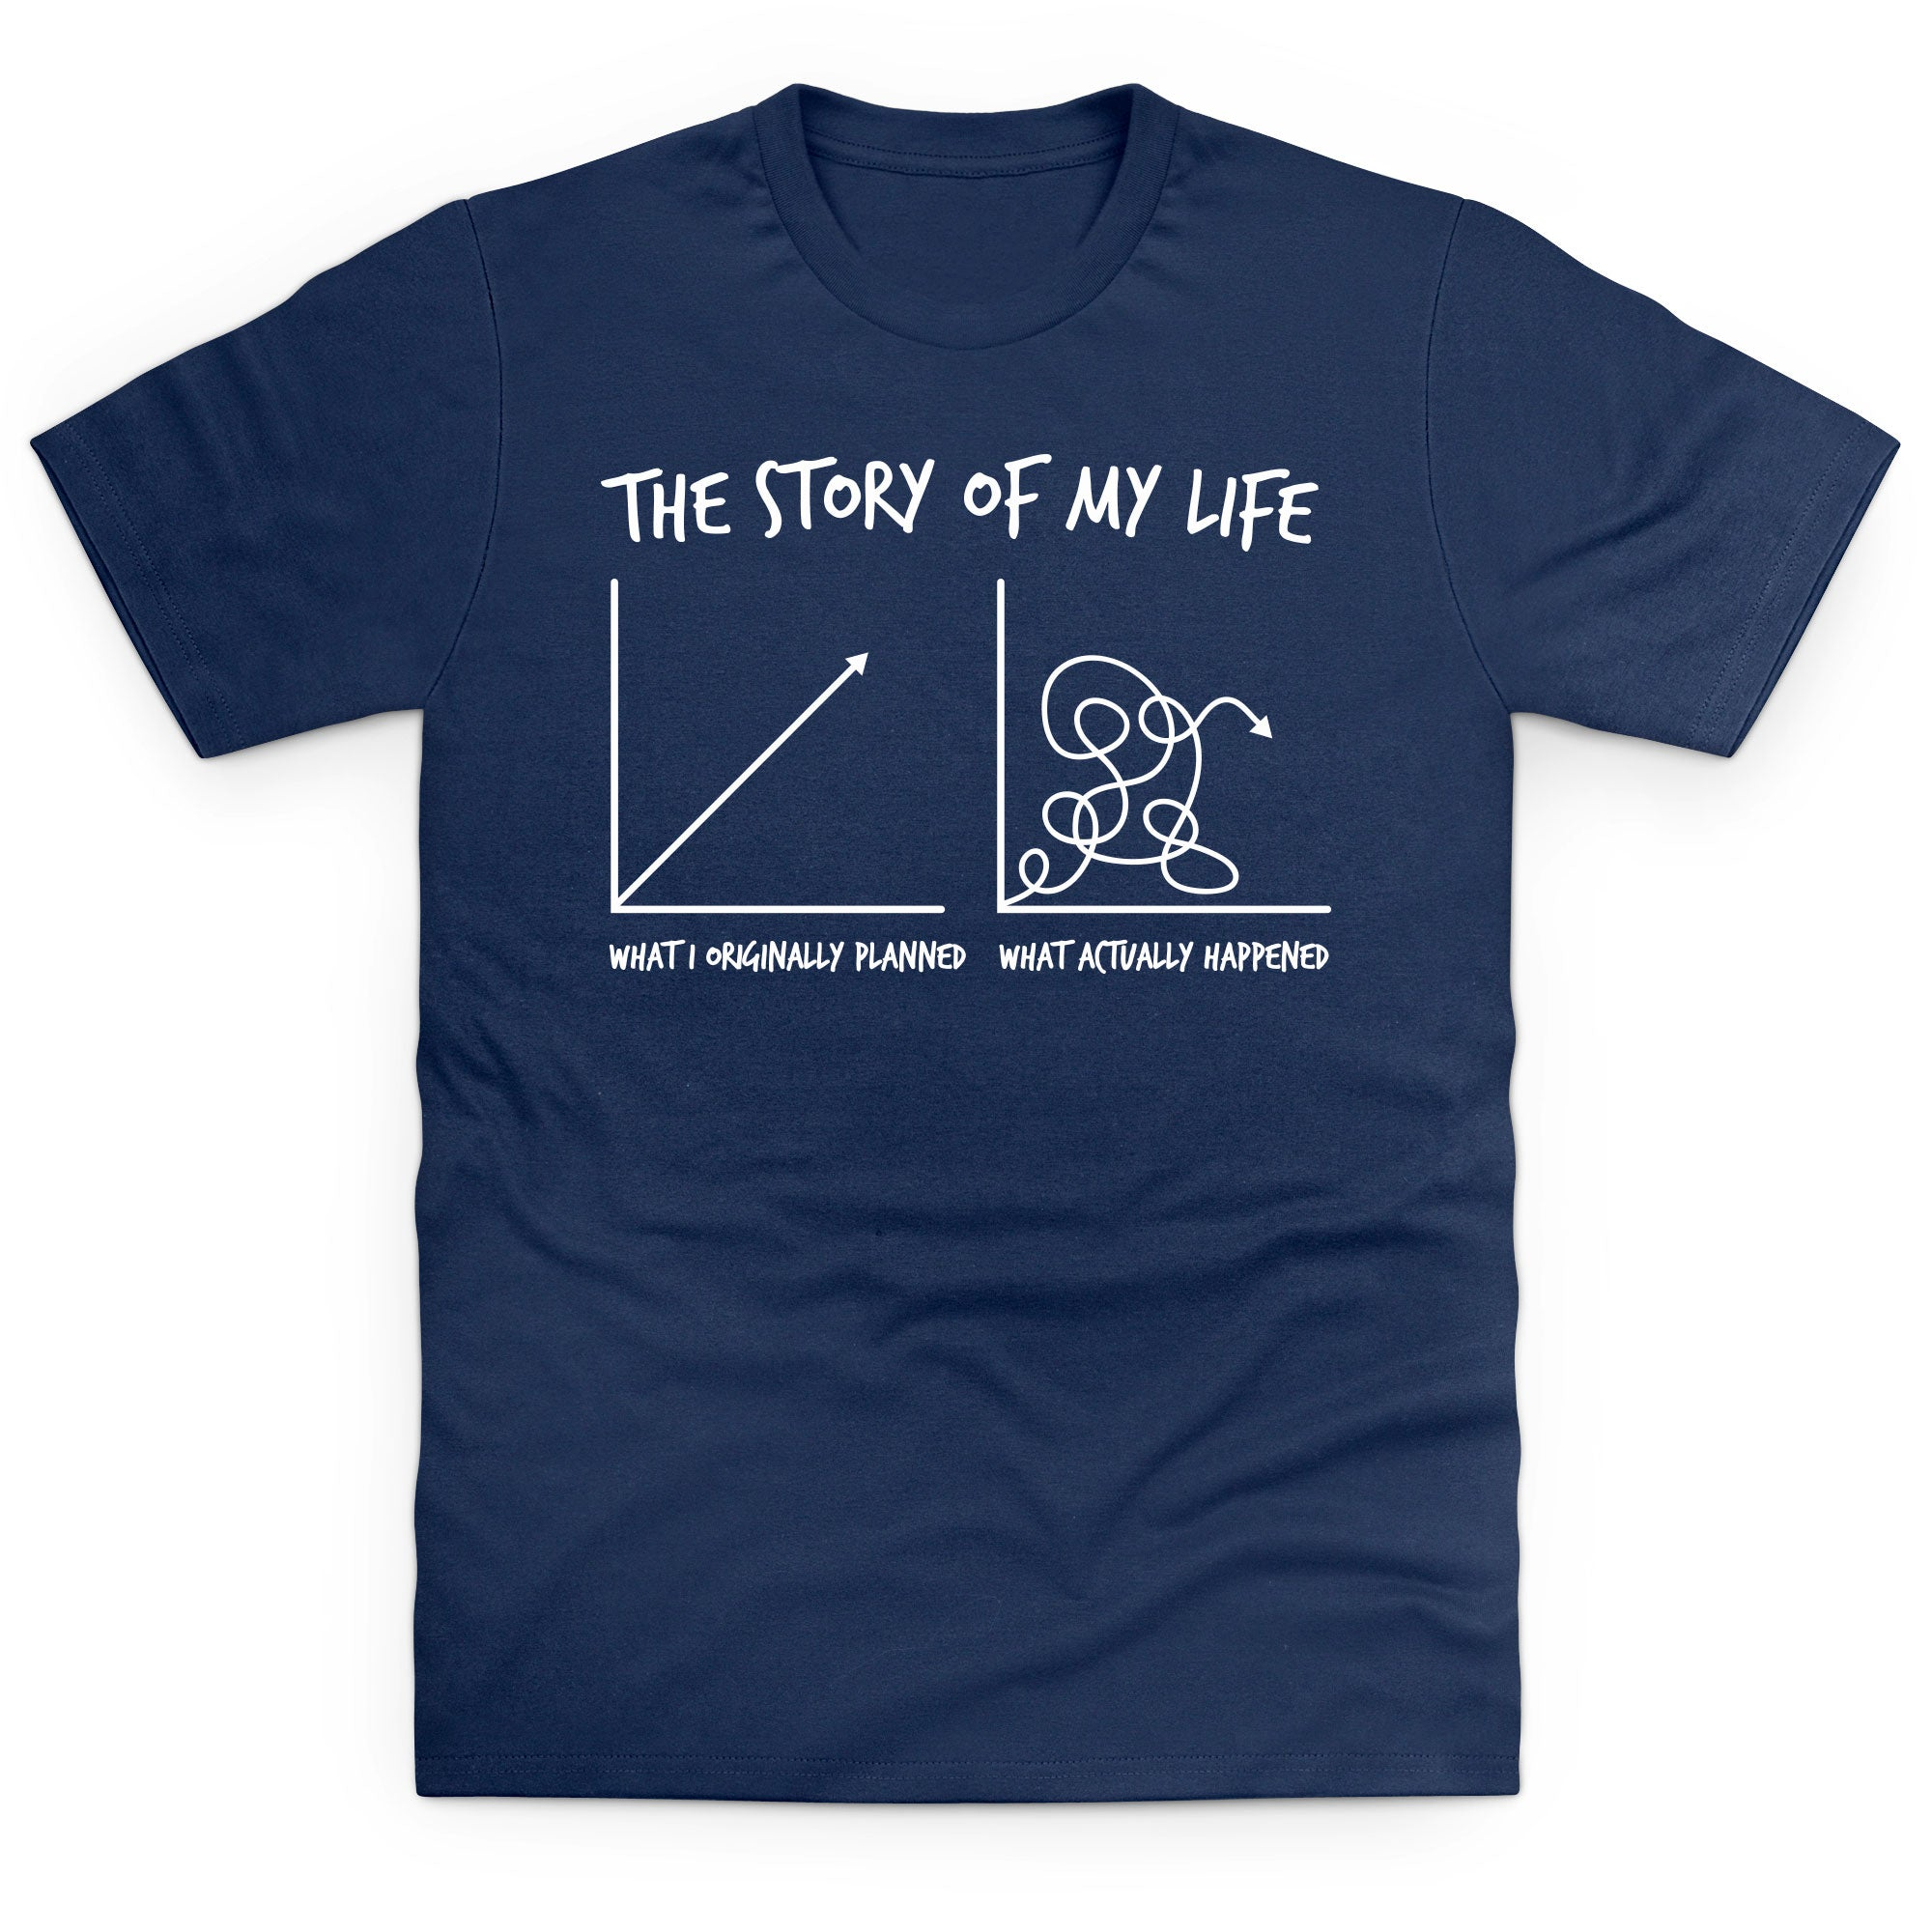 CHEAP The Story Of My Life Kid's T Shirt 25897396469 – Clothing Accessories